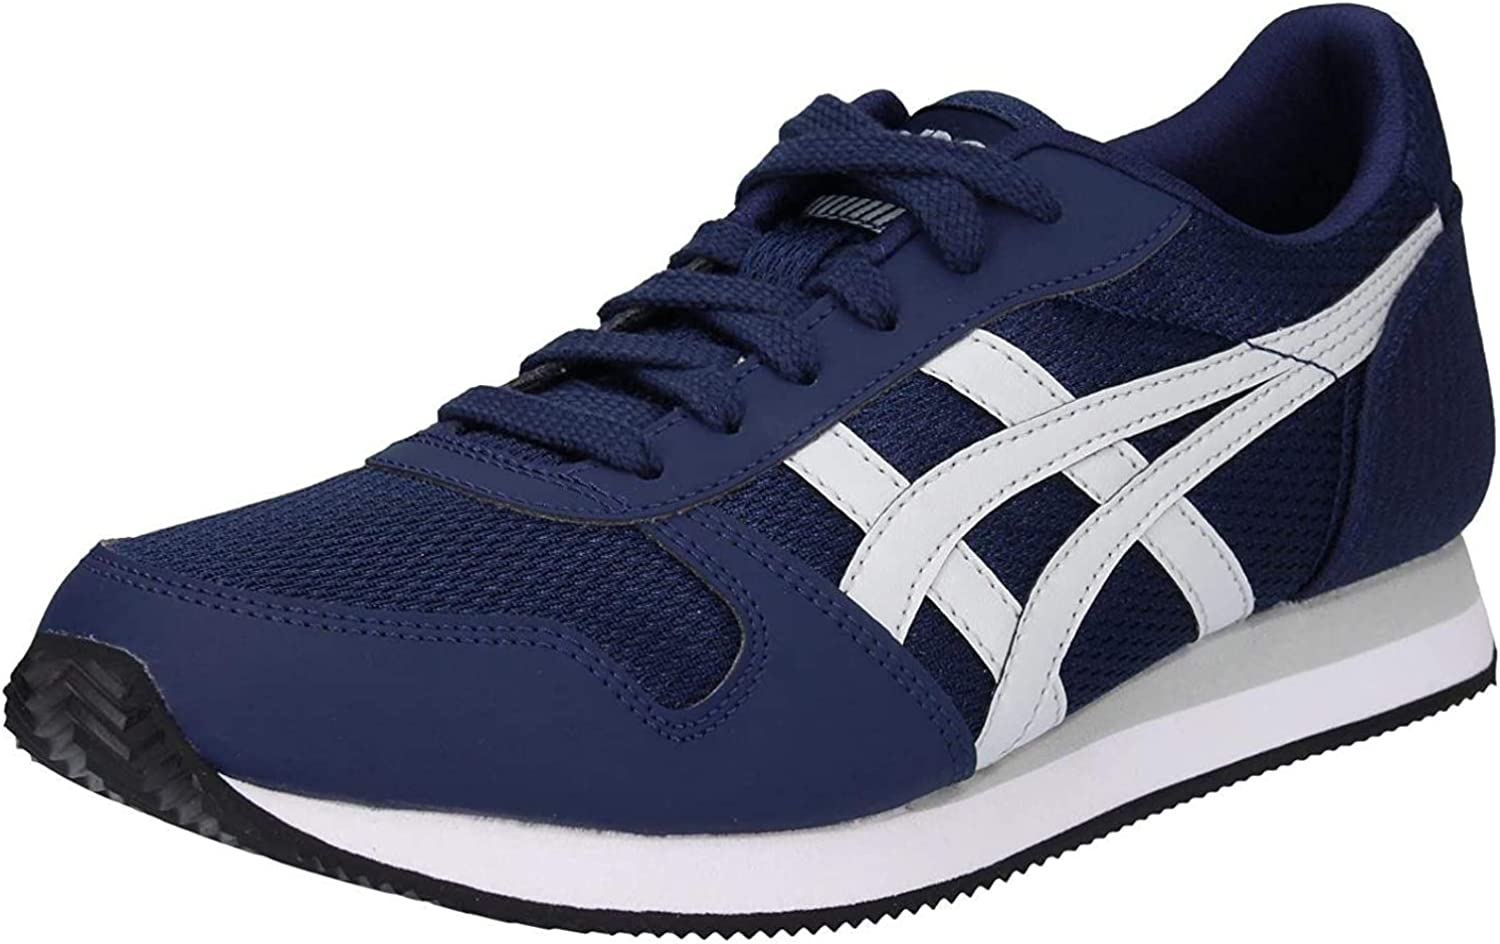 ASICS Tiger Curreo II Shoes